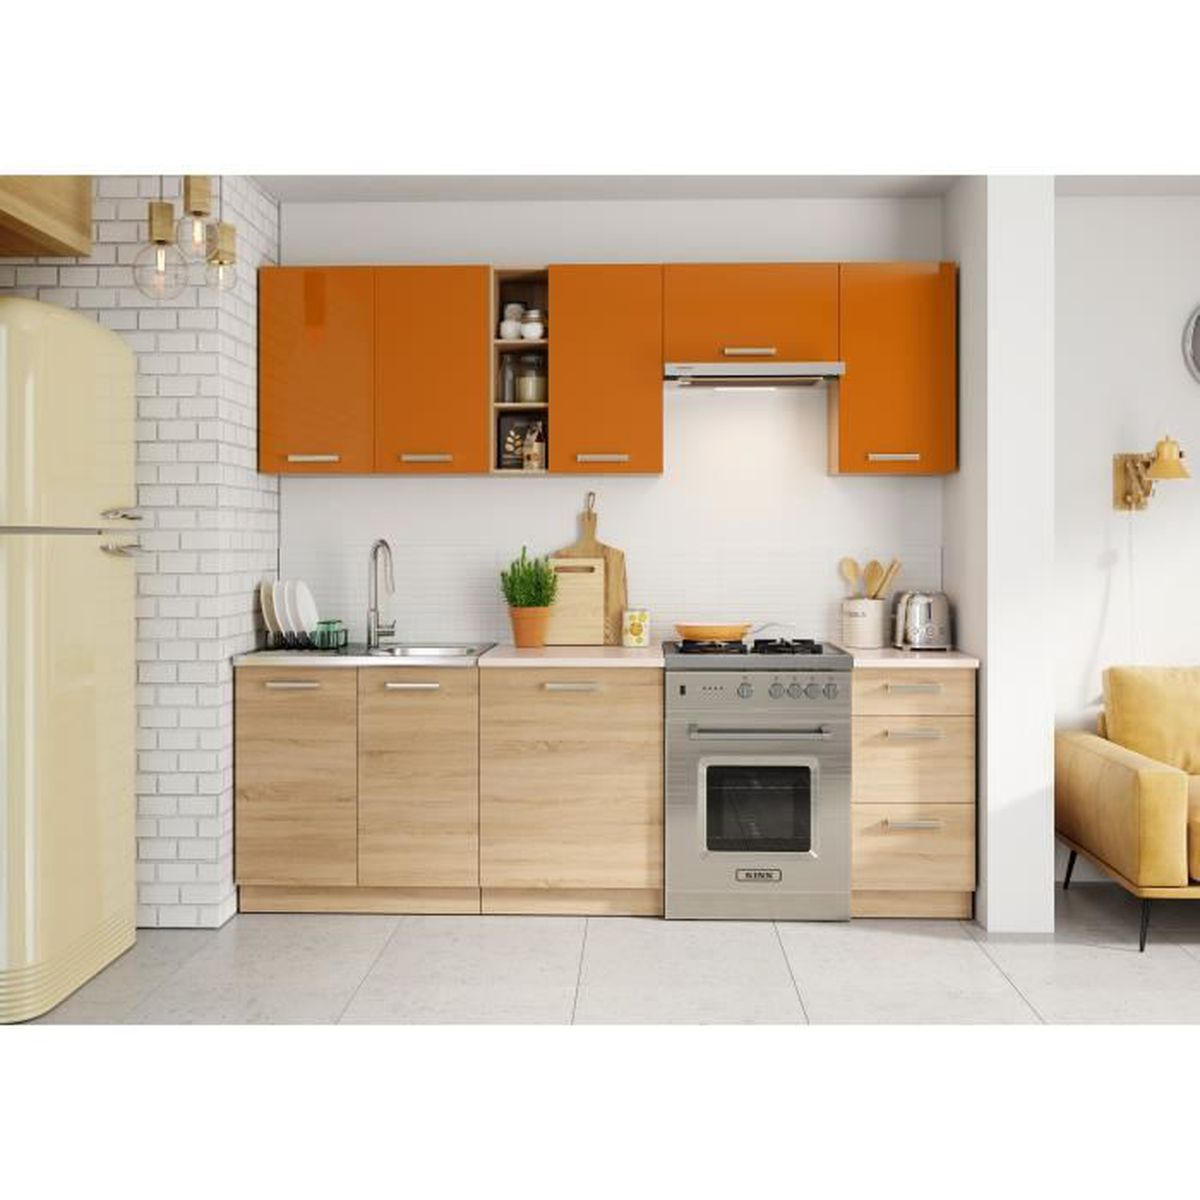 cuisine lena 2m40 7 meubles orange beige achat vente cuisine compl te cuisine lena 2m40. Black Bedroom Furniture Sets. Home Design Ideas